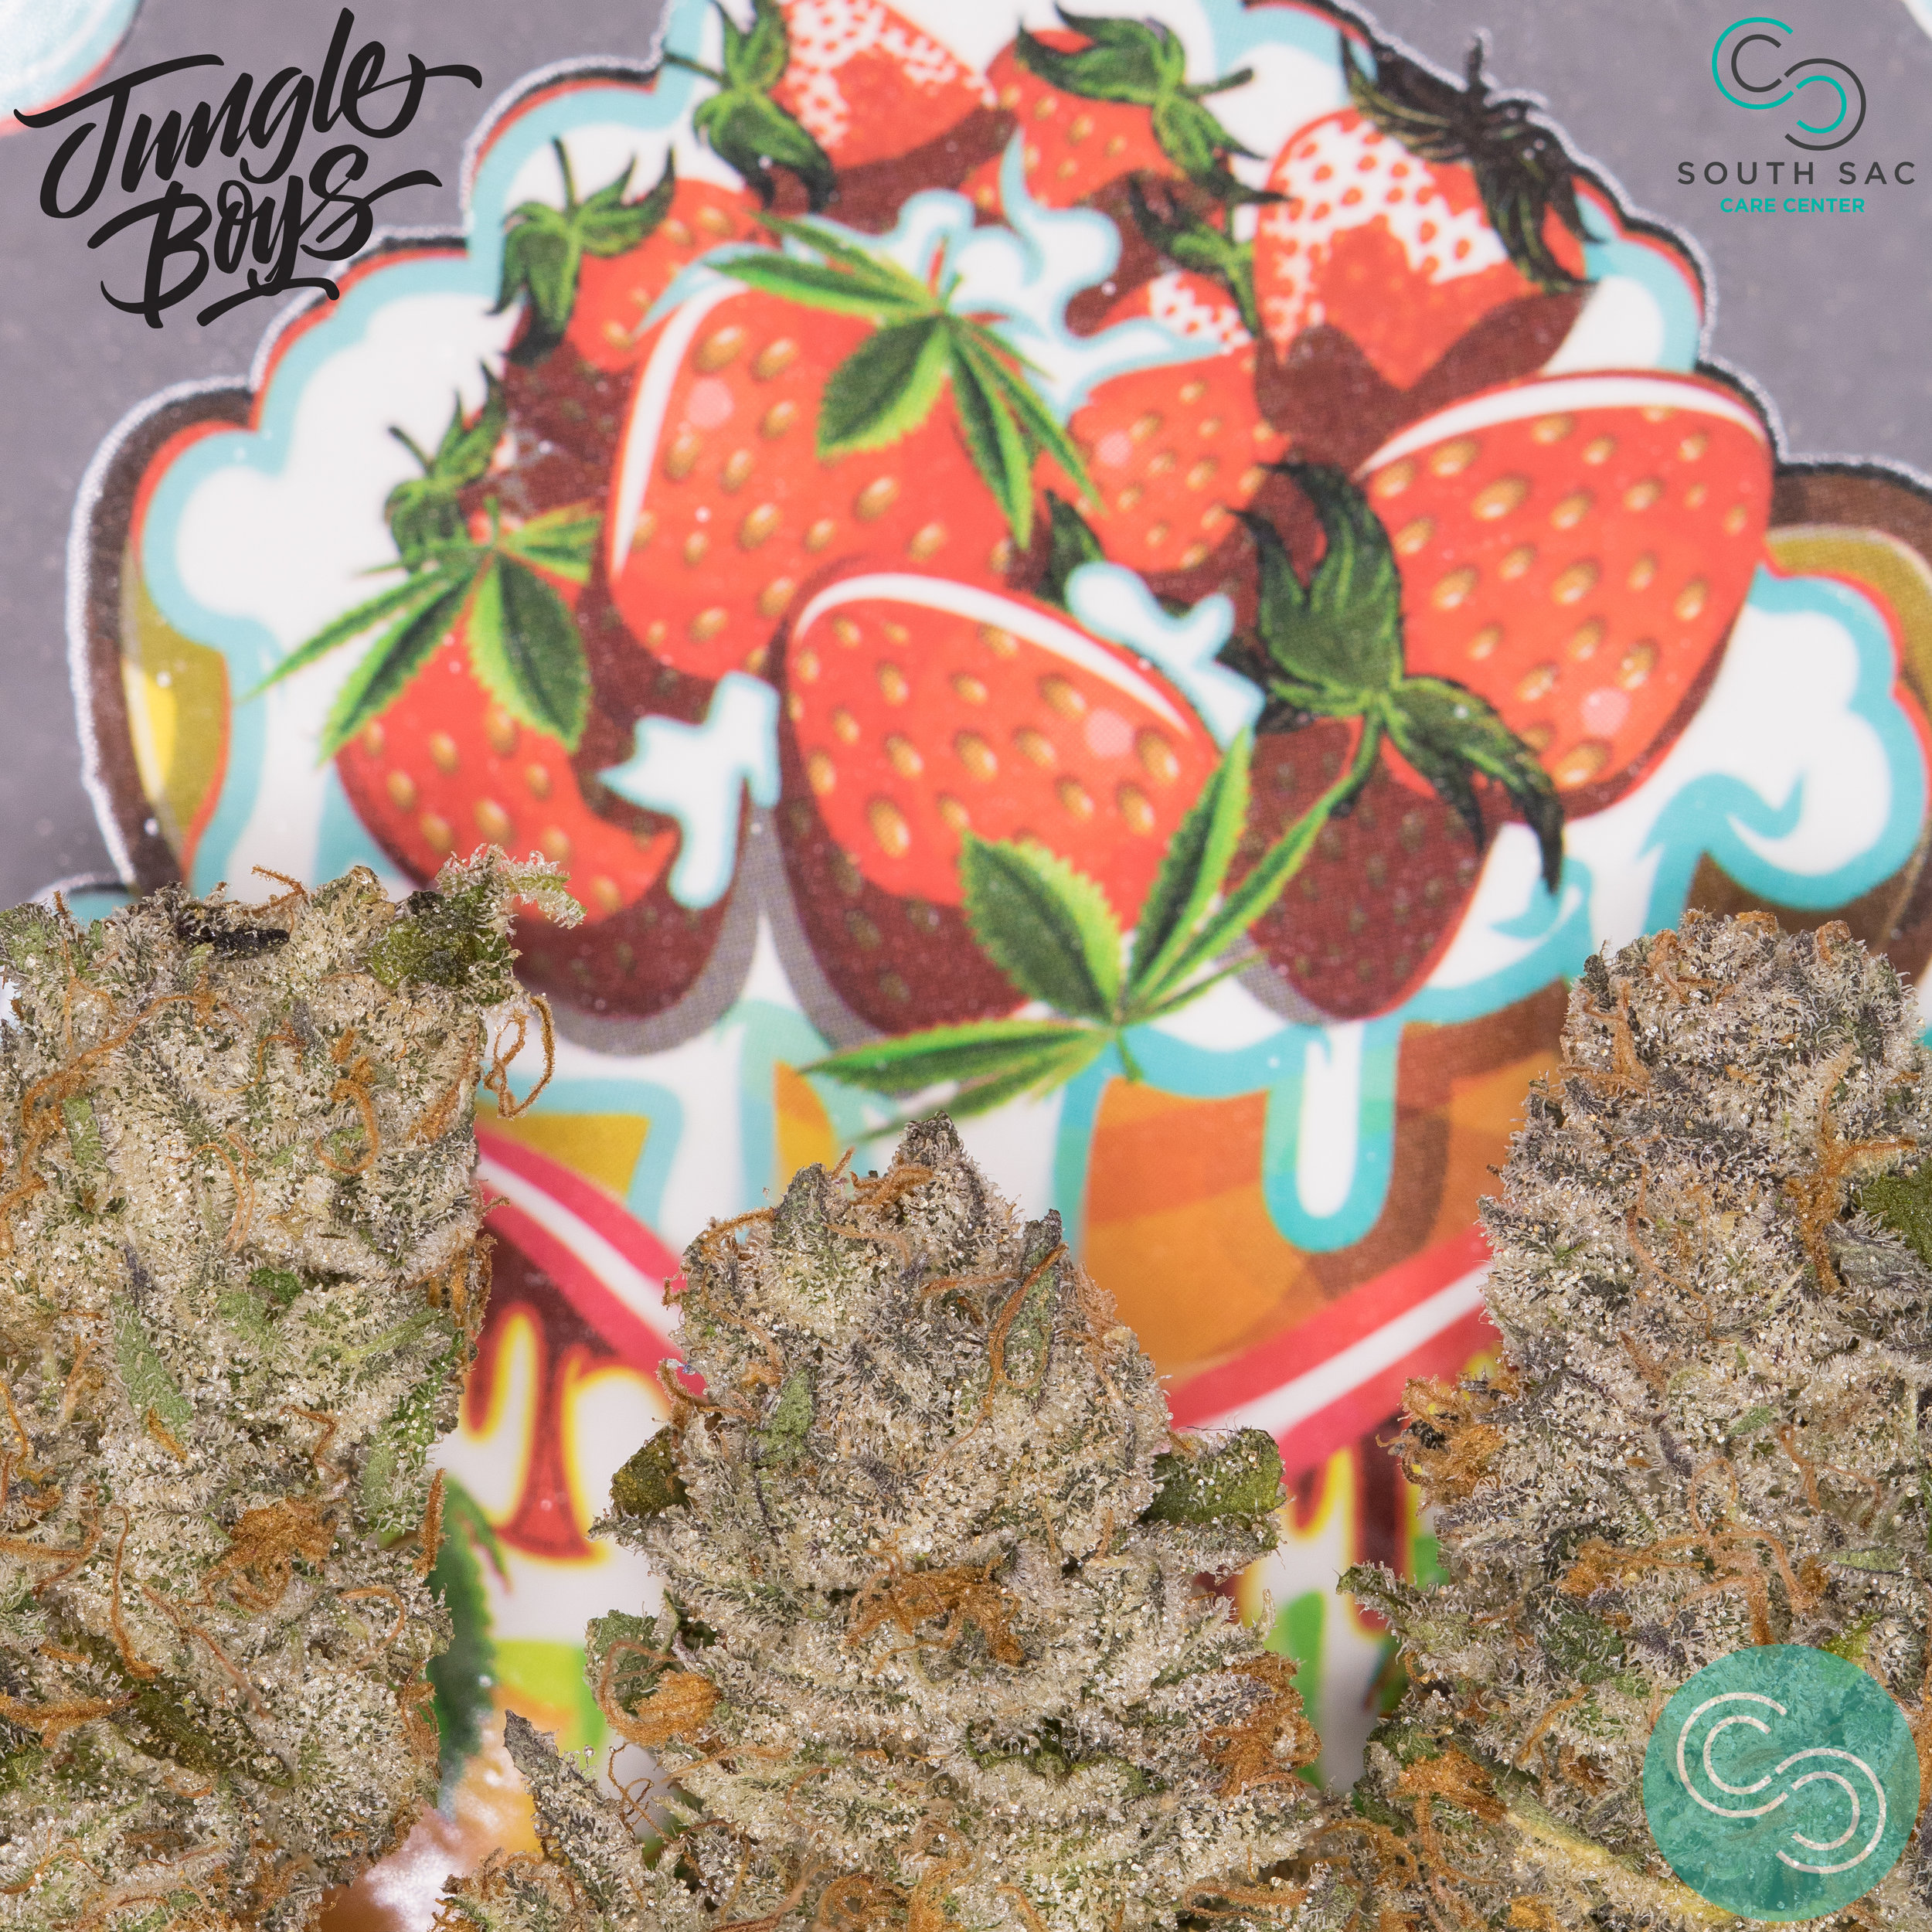 """Strawberry Shortcake anyone? Very tasty light """"fruity-berry & kush"""" flavor along with a strong energizing buzzing effect."""